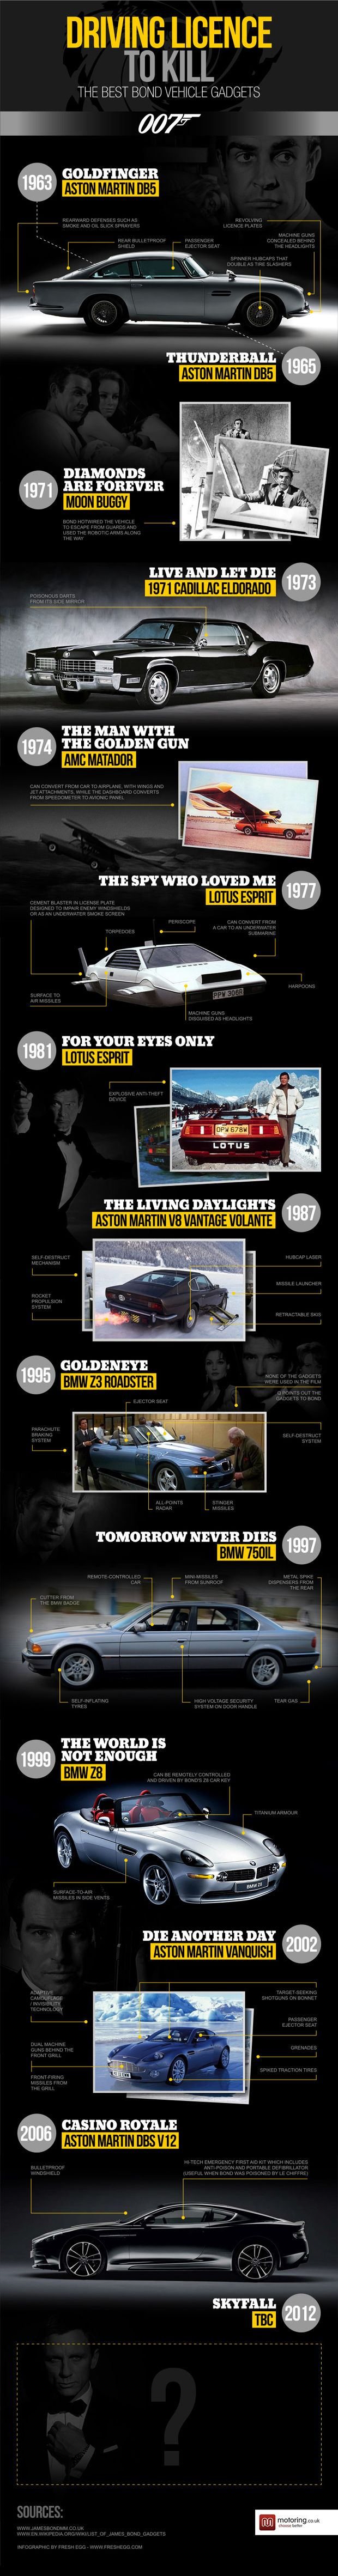 Infographic: The Best Bond Vehicle Gadgets From The 007 Film Franchise | Complex